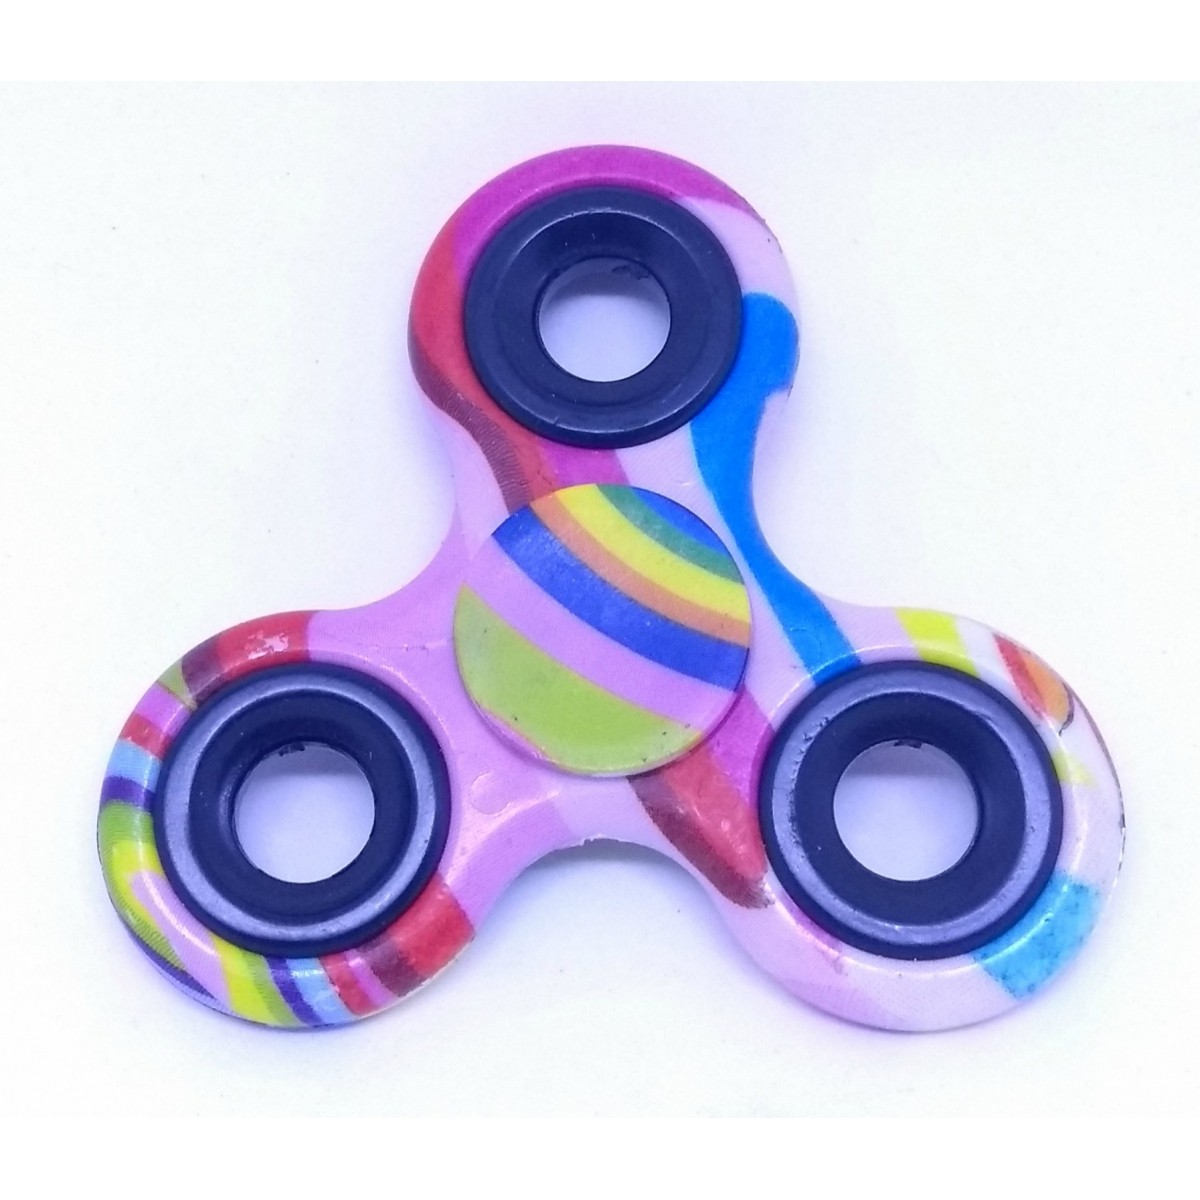 Hand Spinner Coloridos / SORTIDOS Rolamento Anti Estresse Fidget Hand Spinner